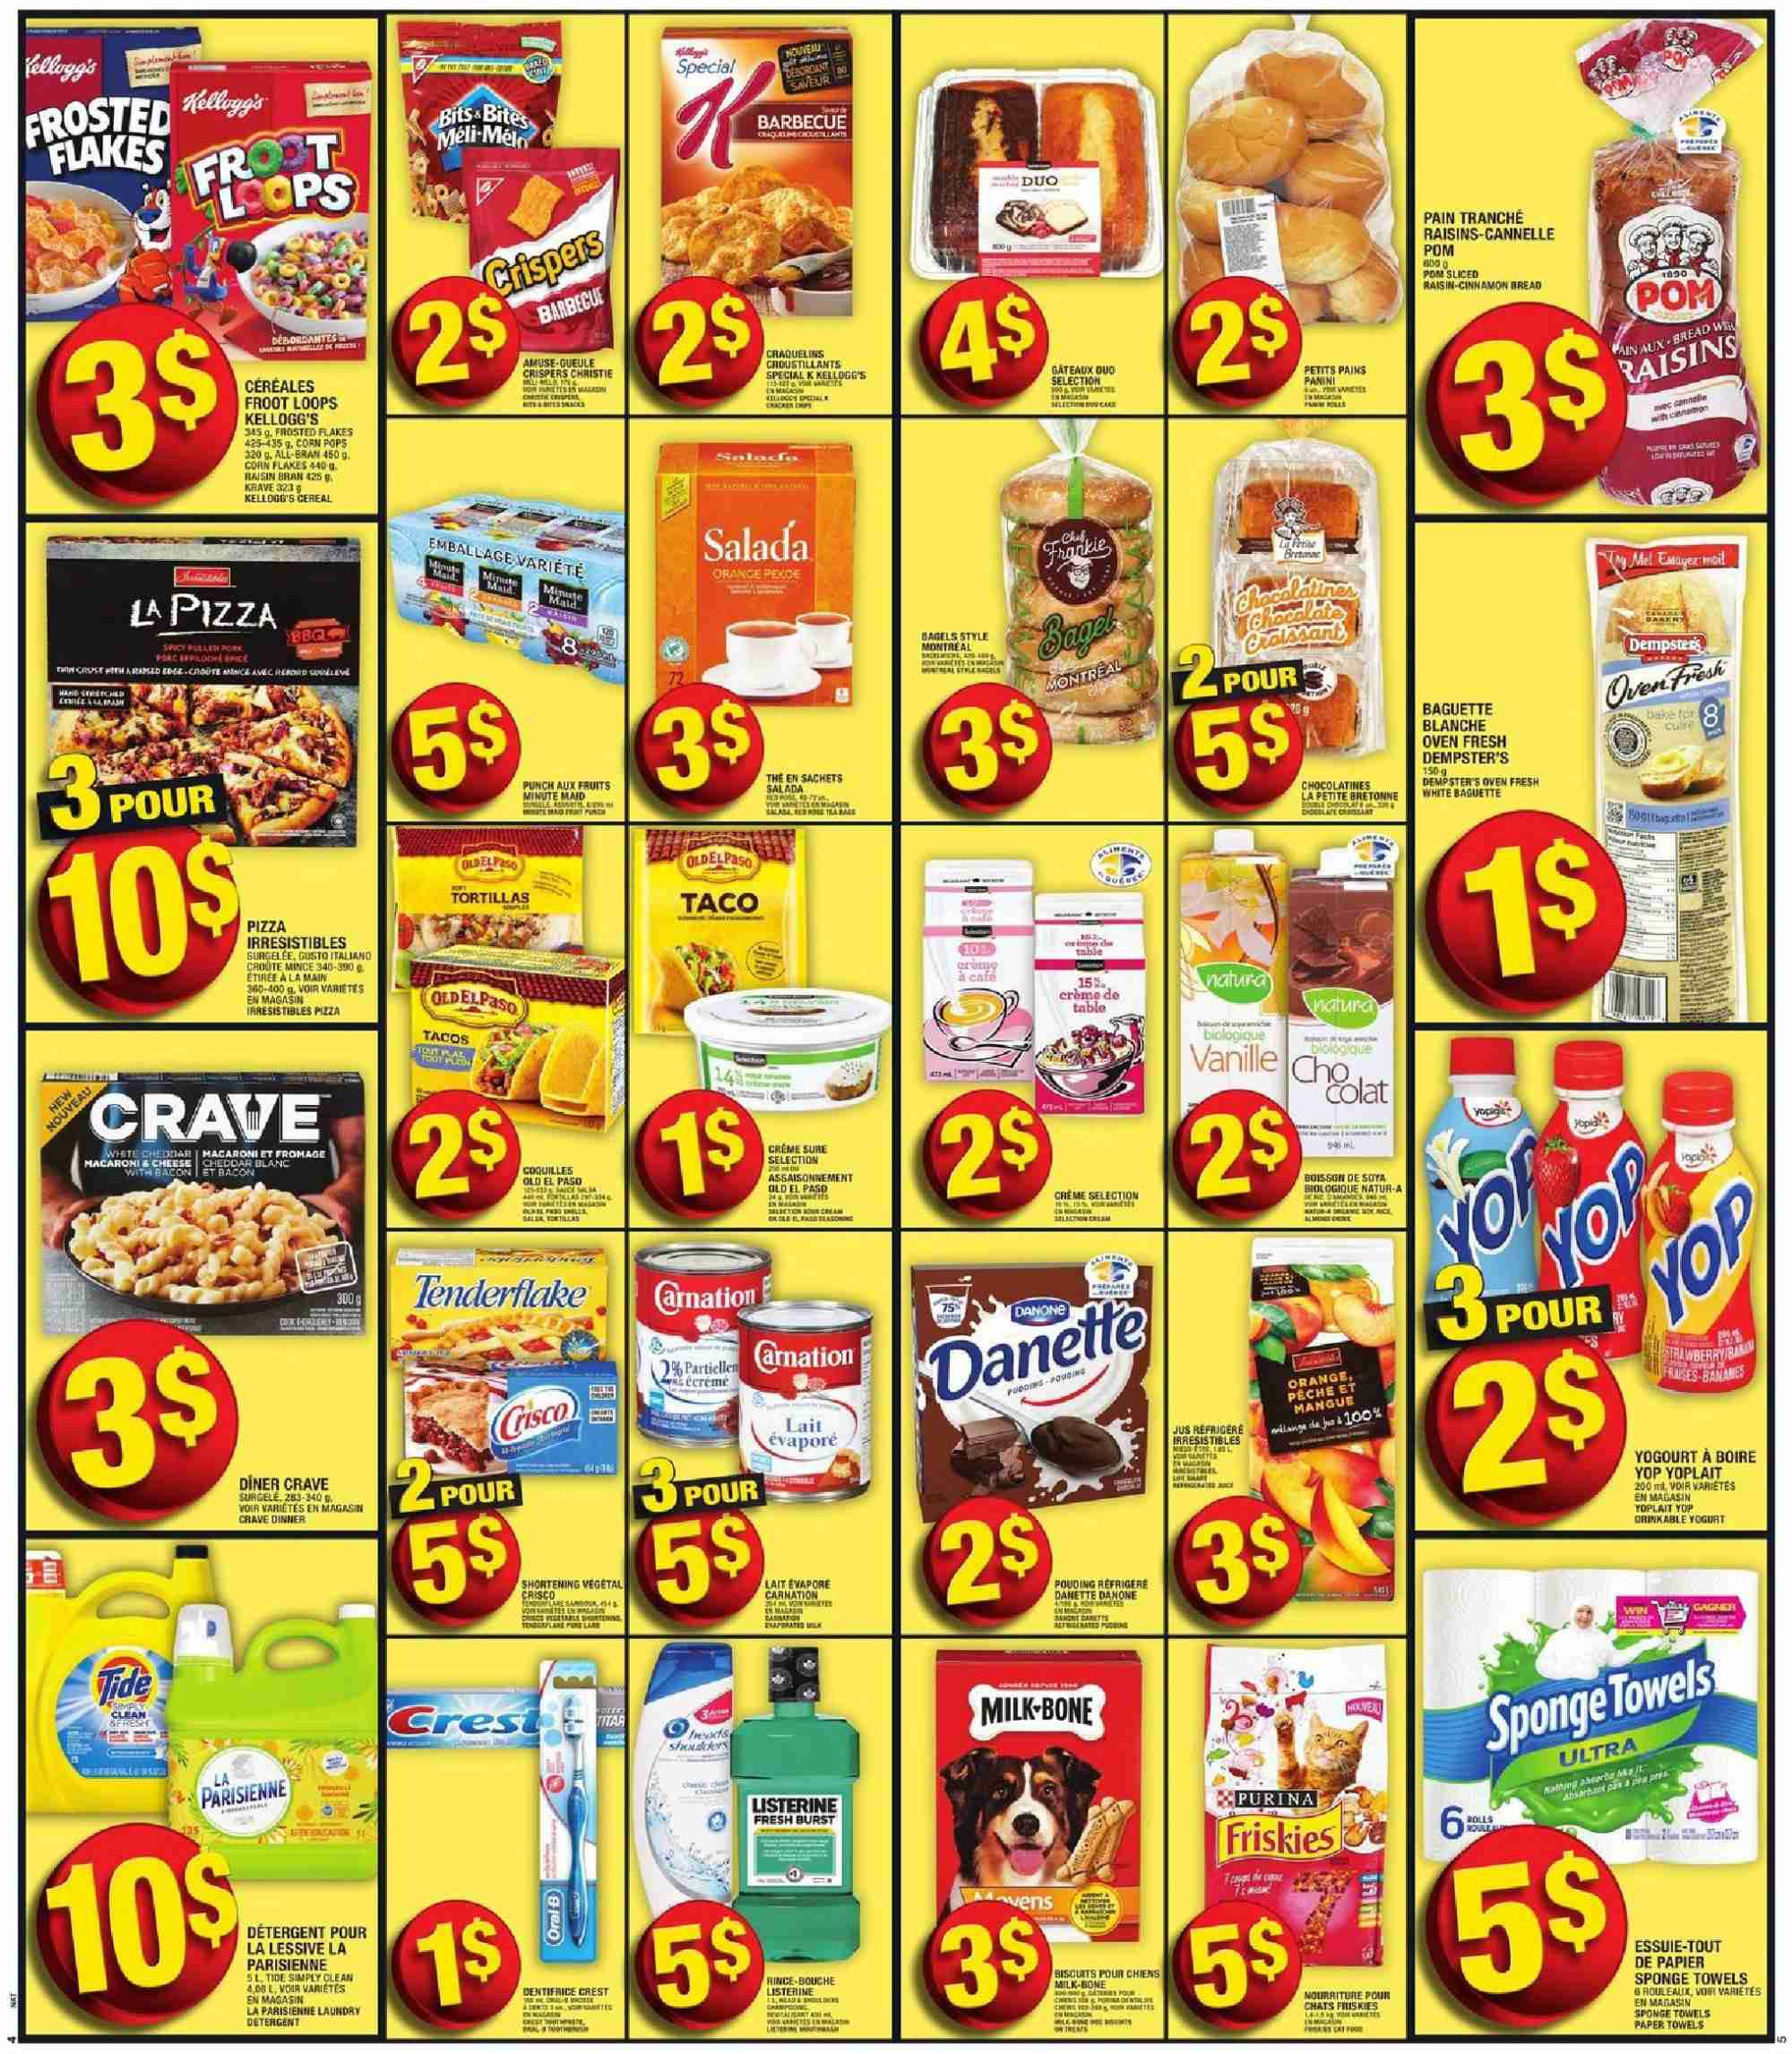 Super C Flyer - October 18, 2018 - October 24, 2018 - Sales products - baguette, biscuits, bran, bread, cereals, corn, crème, crest, detergent, listerine, milk, raisins, tide, tortillas, towel, yogurt, pizza, oven, sponge, cereal, danone, corn flakes, punch, flakes, barbecue, biscuit, cannelle, dentifrice, friskies, tortilla, vanille, kellogg's, sachet, lessive, jus, fruits. Page 4.